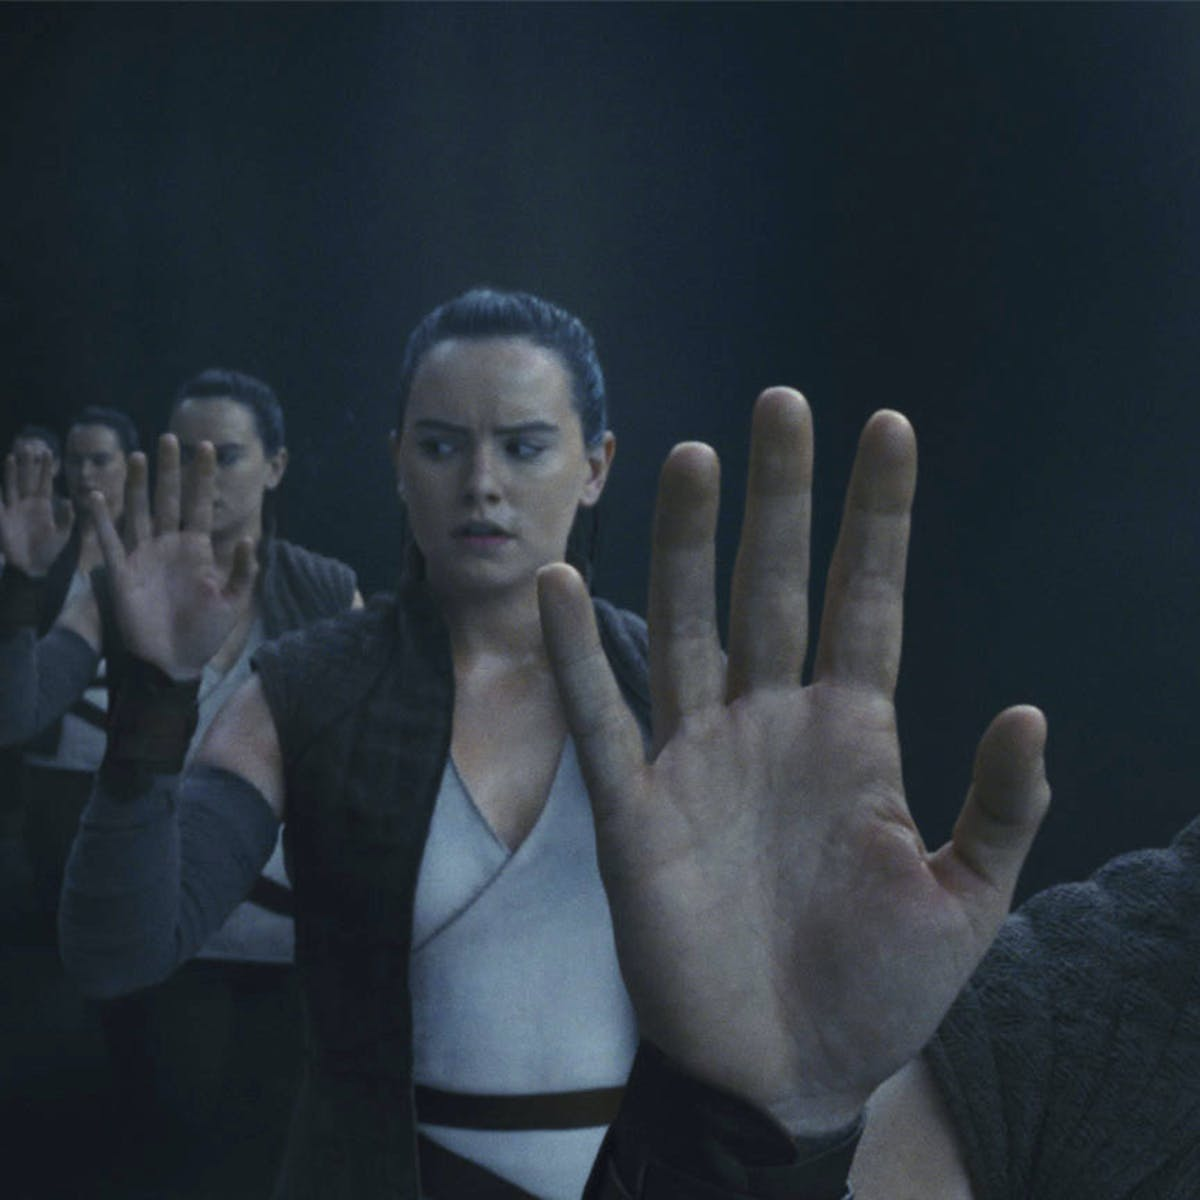 'Star Wars 9' Spoilers: 'Clone Wars' Easter Egg May Reveal a Shocking End